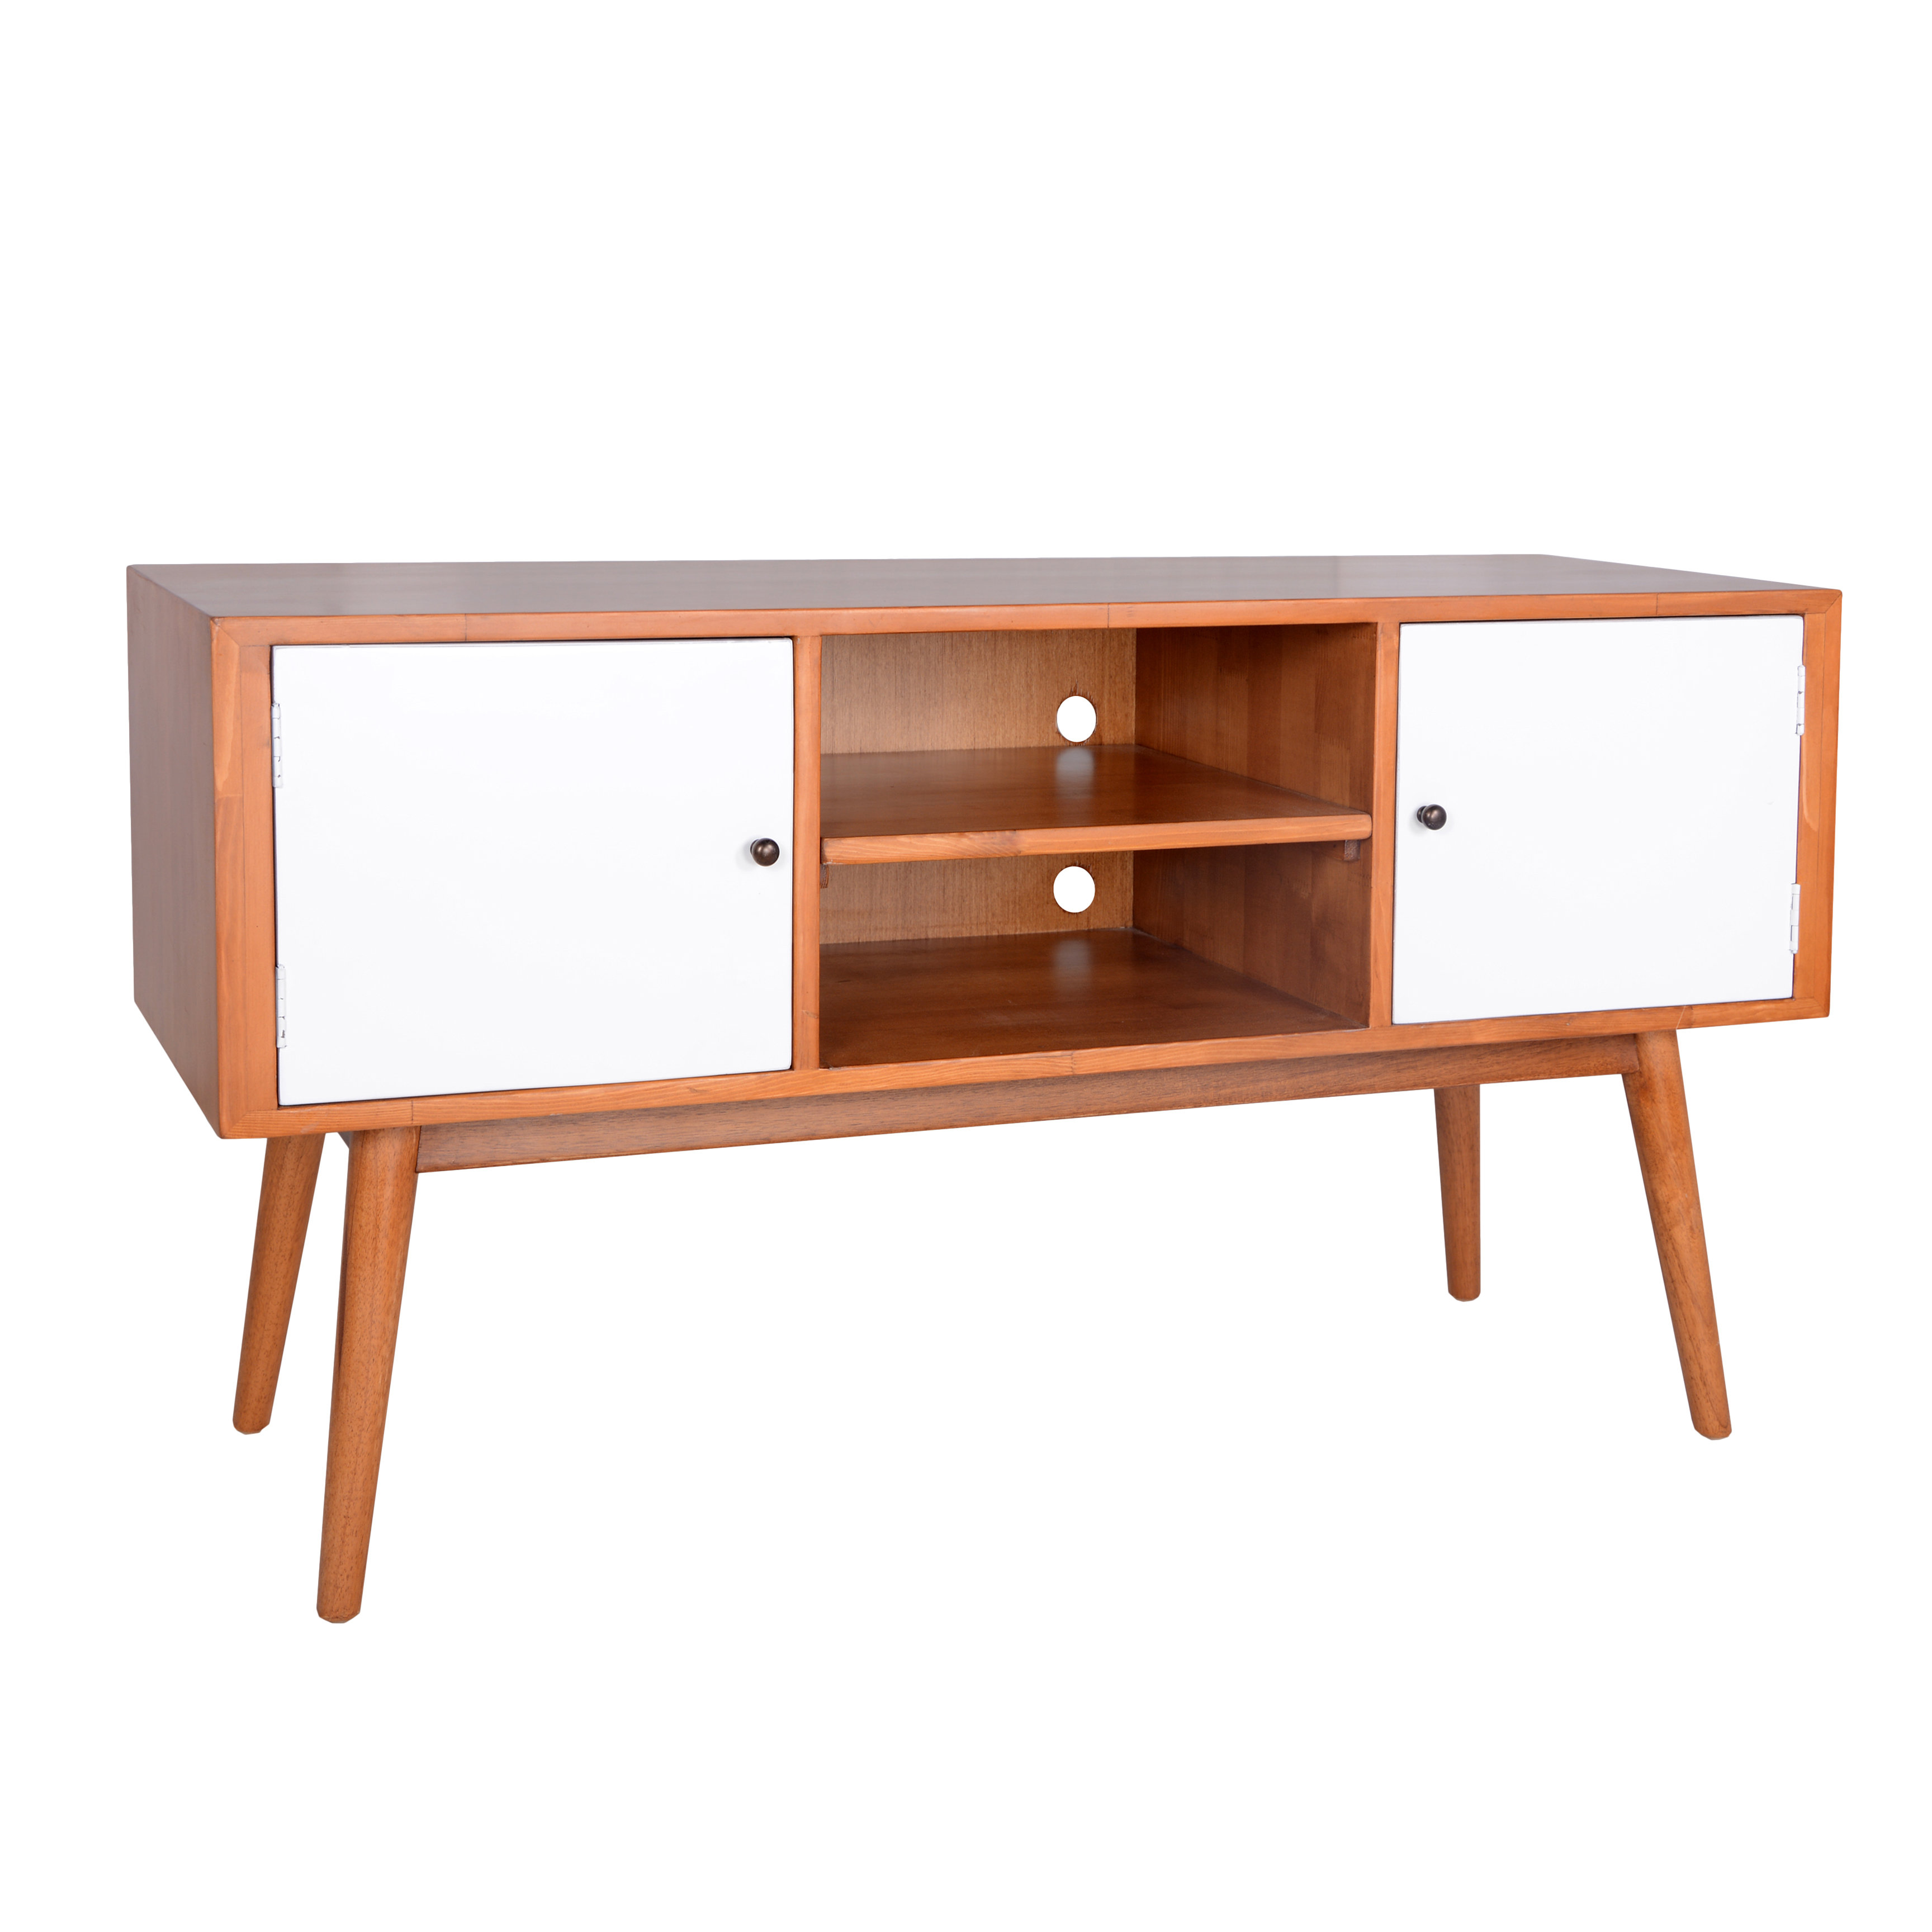 white lacquer media console sergio stand for tvs accent table quickview target mirrored side with drawer set round coffee tables decorating entryway extra wide lack bedside lamps